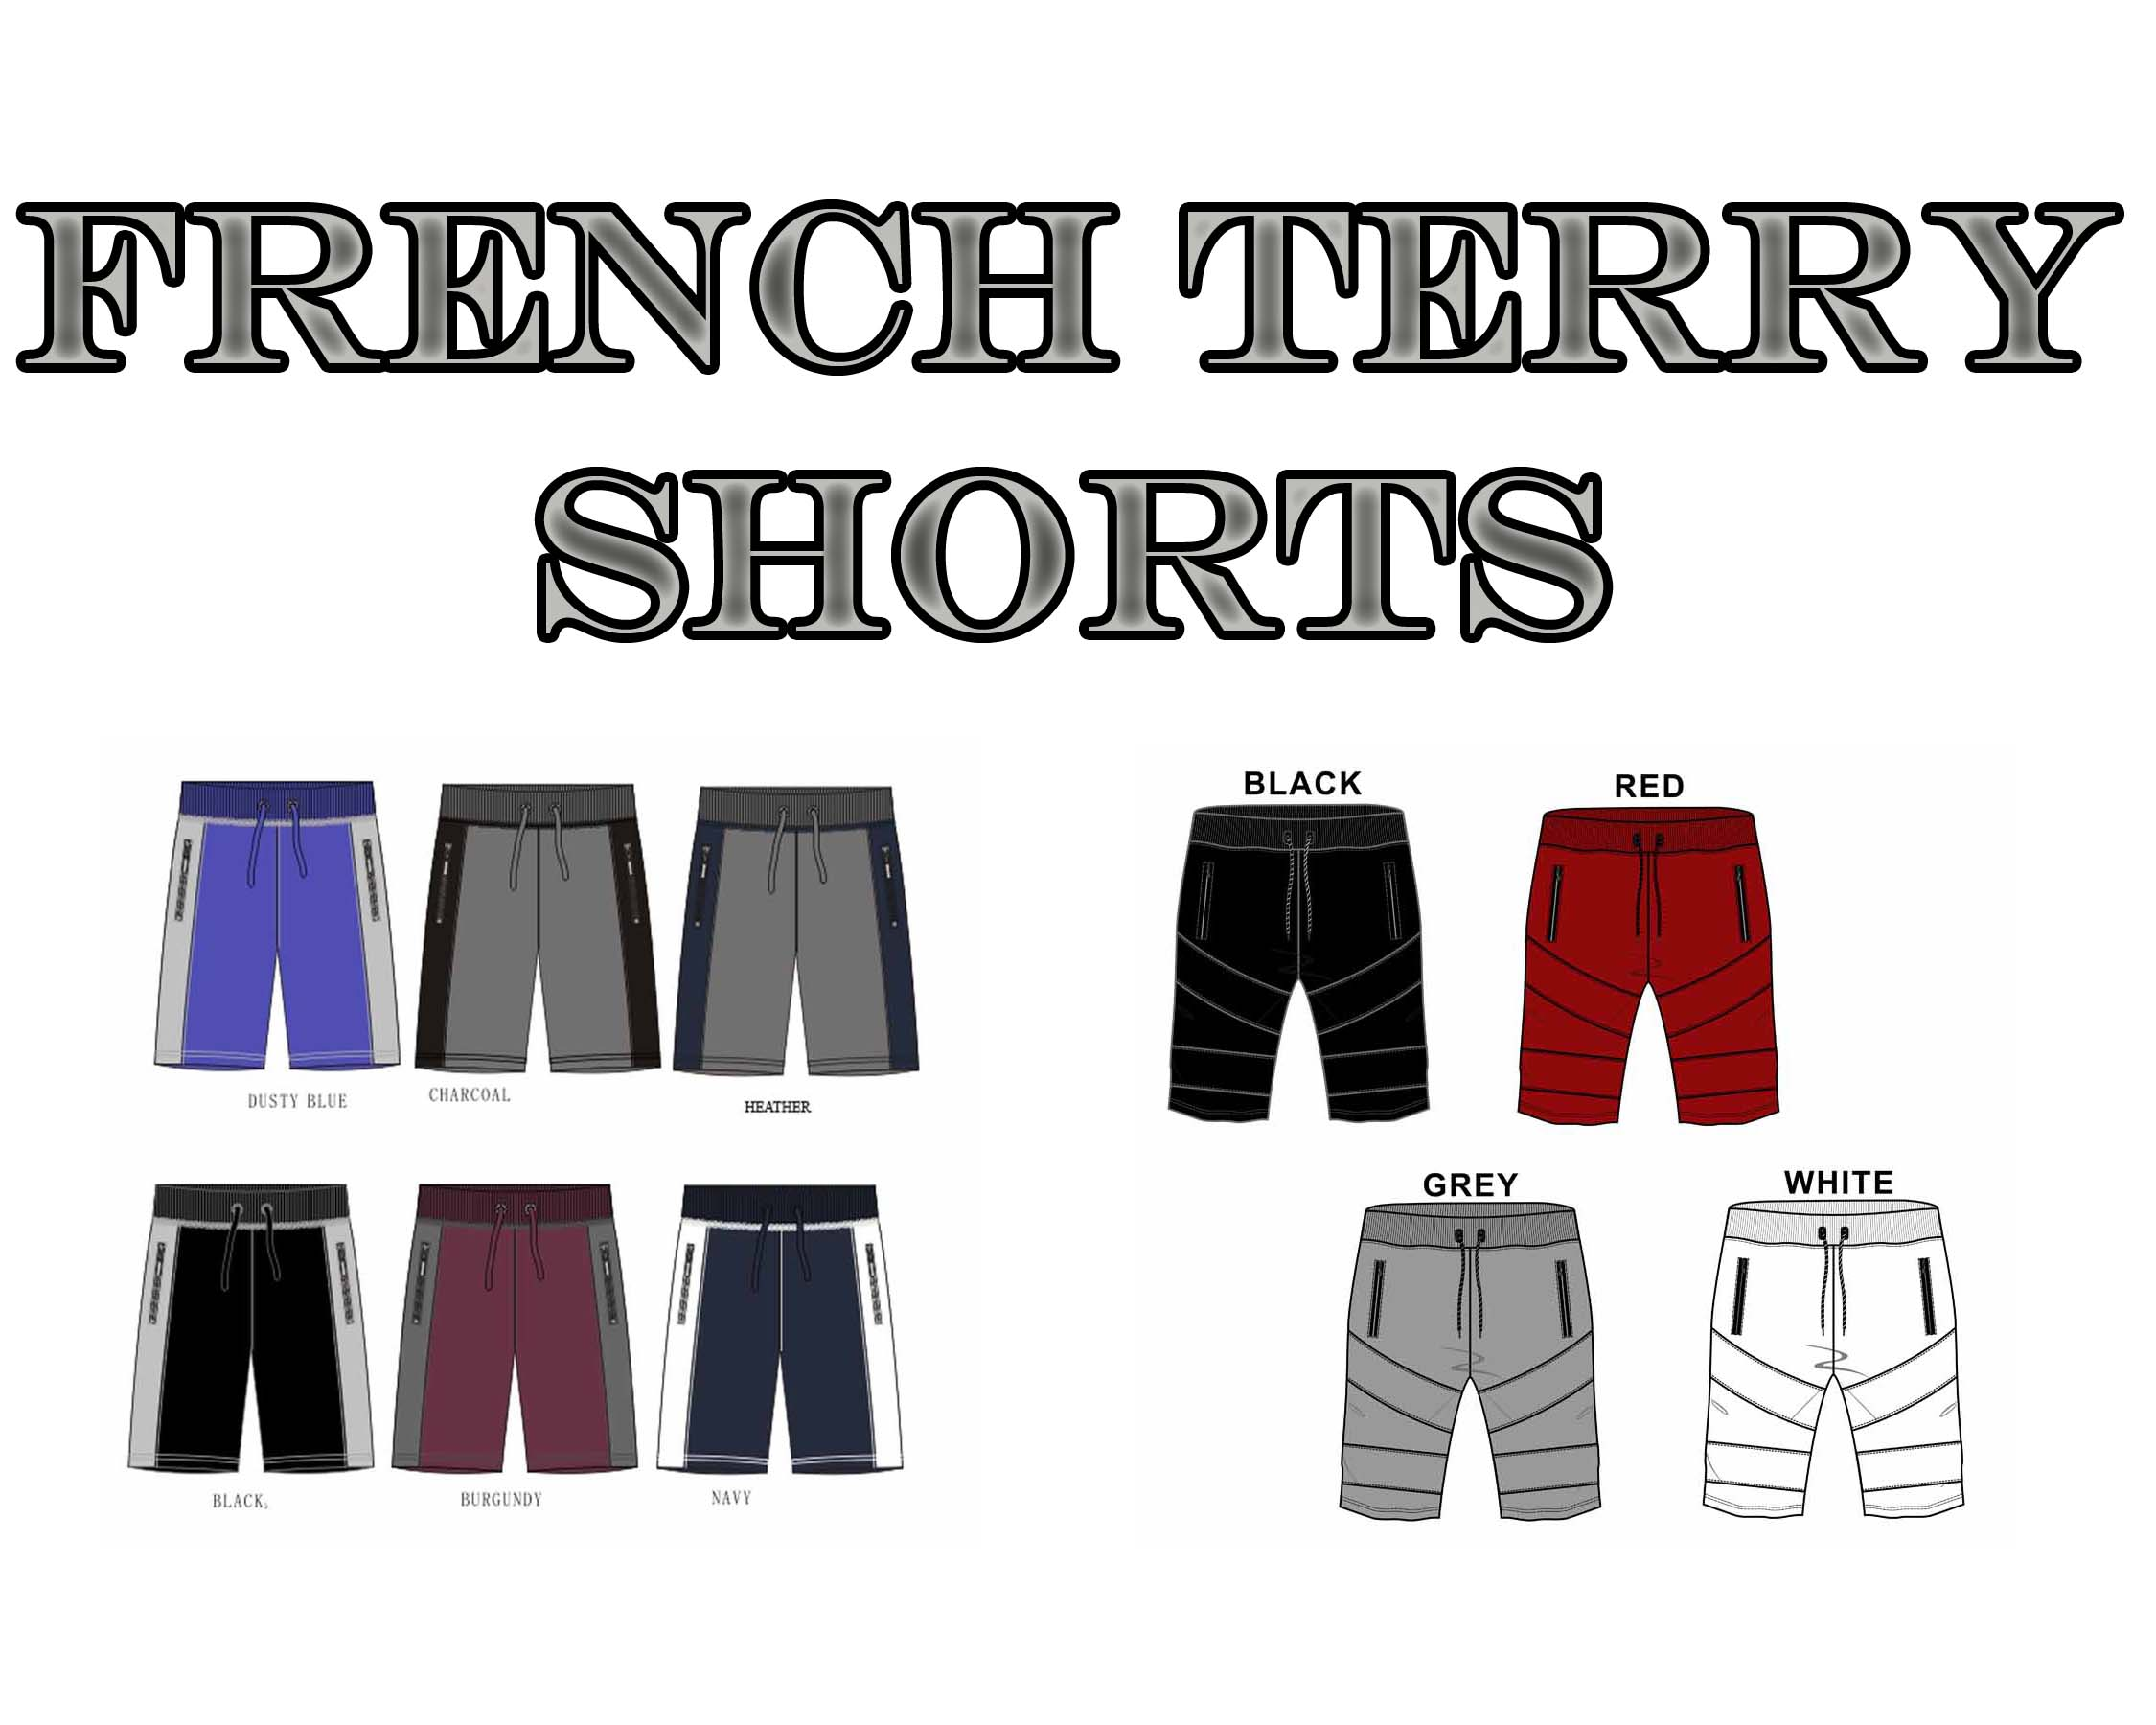 webpage-frenchterry-shorts-arrival-banner-box.jpg